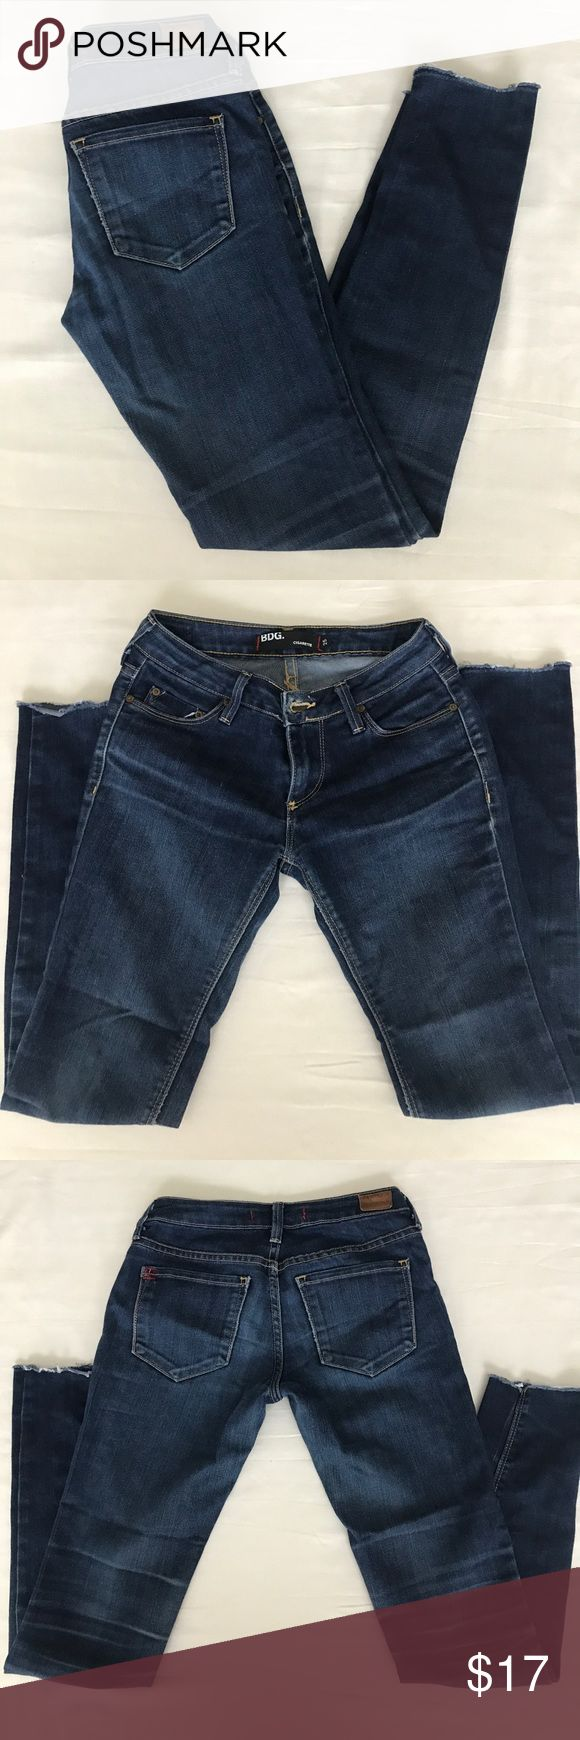 BDG jeans.  Women's cigarette style jeans. BDG jeans.  Women's cigarette style jeans.  Waist- 25 inseam-27.  Buttom pant leg was cut off for trendy look. BDG Jeans Skinny